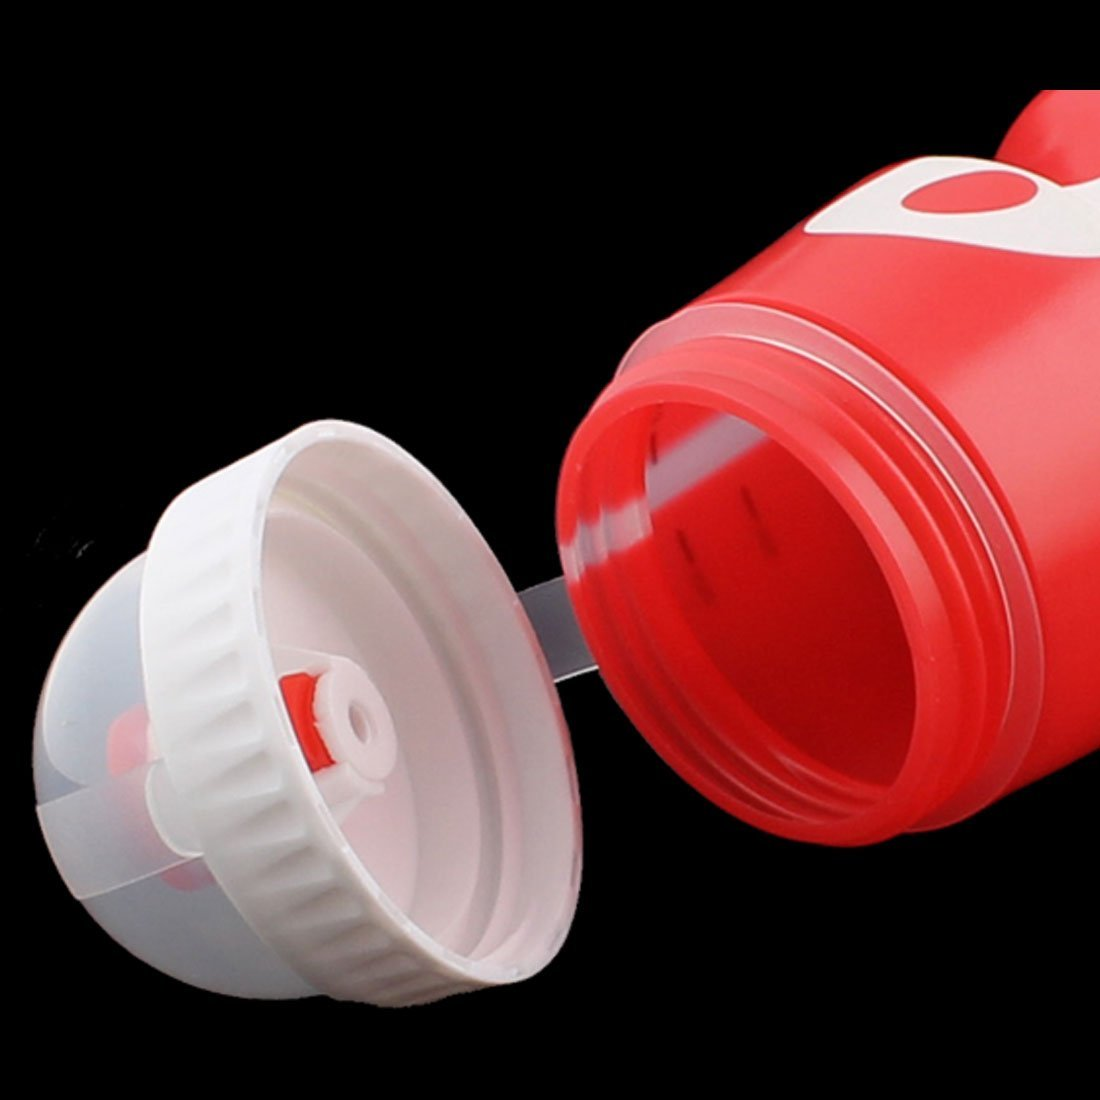 Amazon.com : eDealMax plástico Viajes Deportes colador de té de agua del diseño de la Botella de 650 ml Holder Blanco Rojo : Pet Supplies